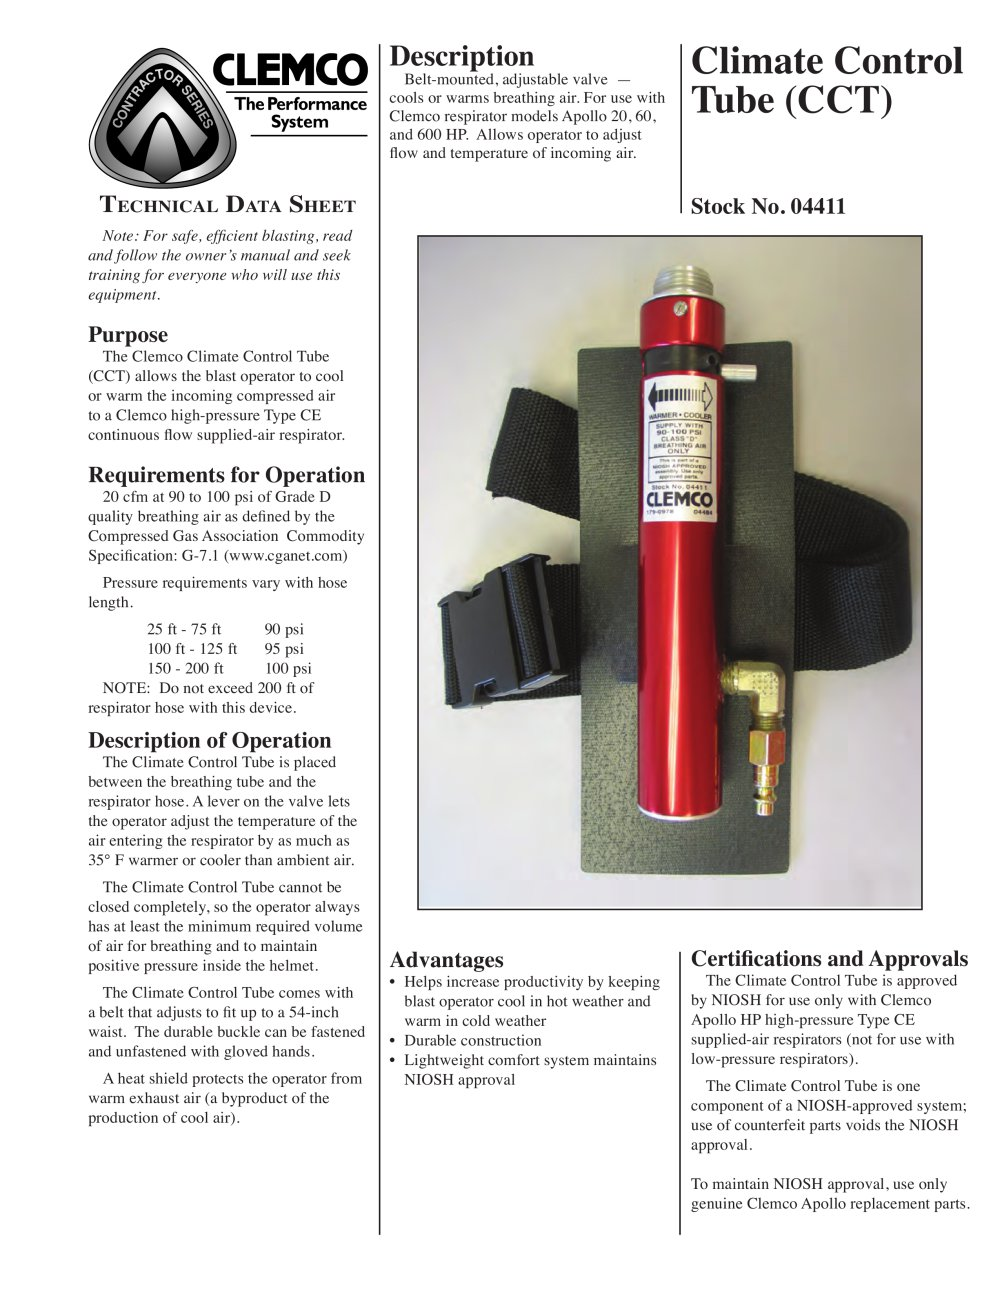 Clemco Industries Blast Cabinets Climate Control Tube Rev D Clemco Industries Pdf Catalogue